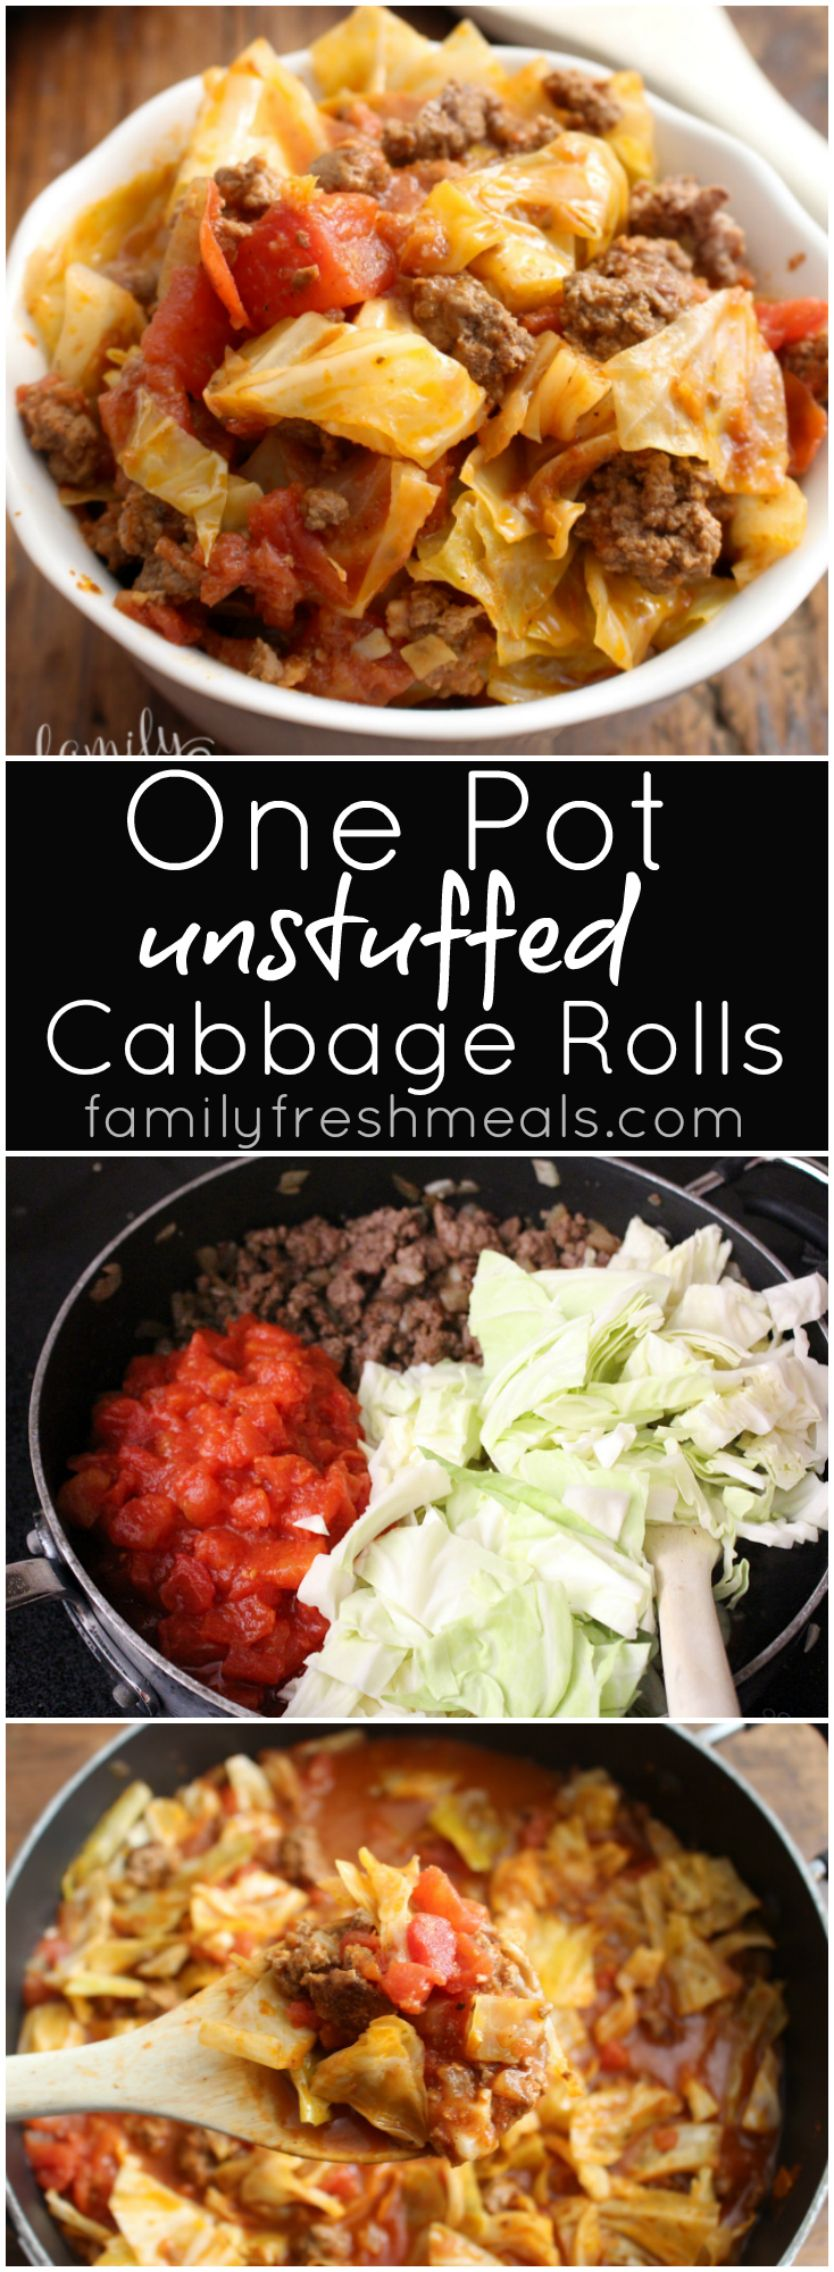 One Pot Unstuffed Cabbage Rolls - A fast, cheap family meal